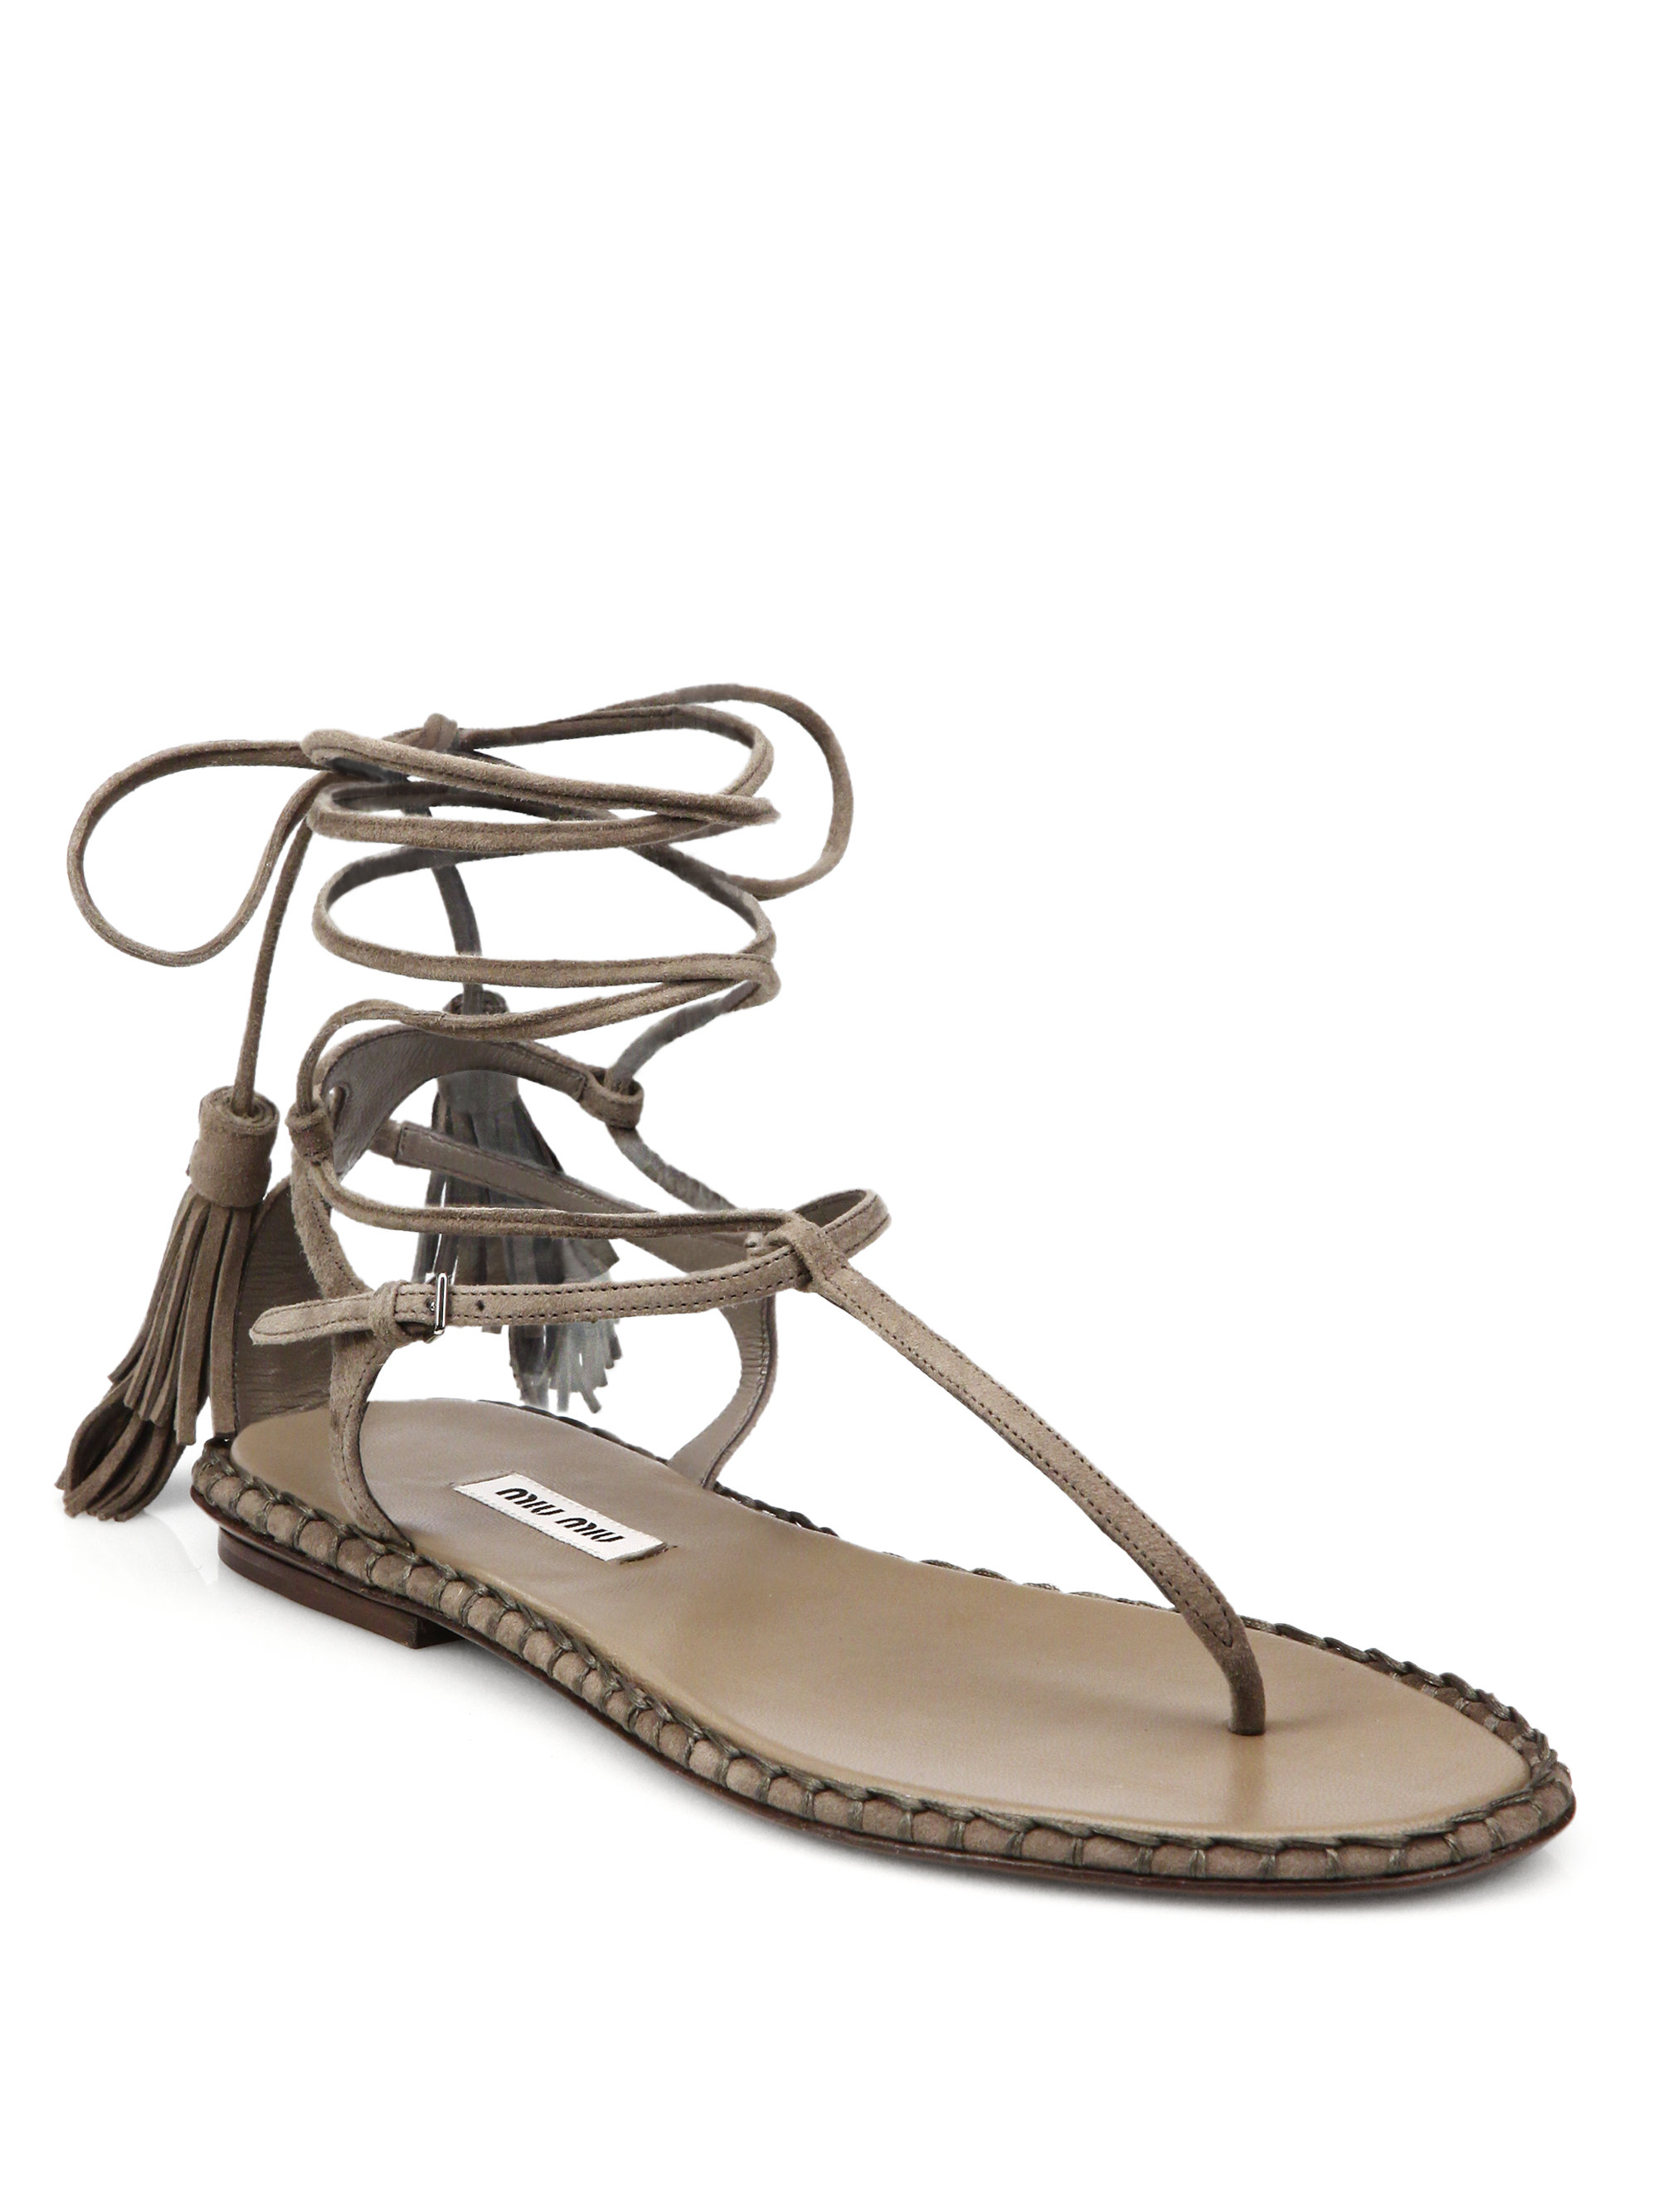 cheap outlet Miu Miu Leather Thong Sandals outlet with paypal order free shipping 100% original big sale online fashionable cheap online YYAZ7pn